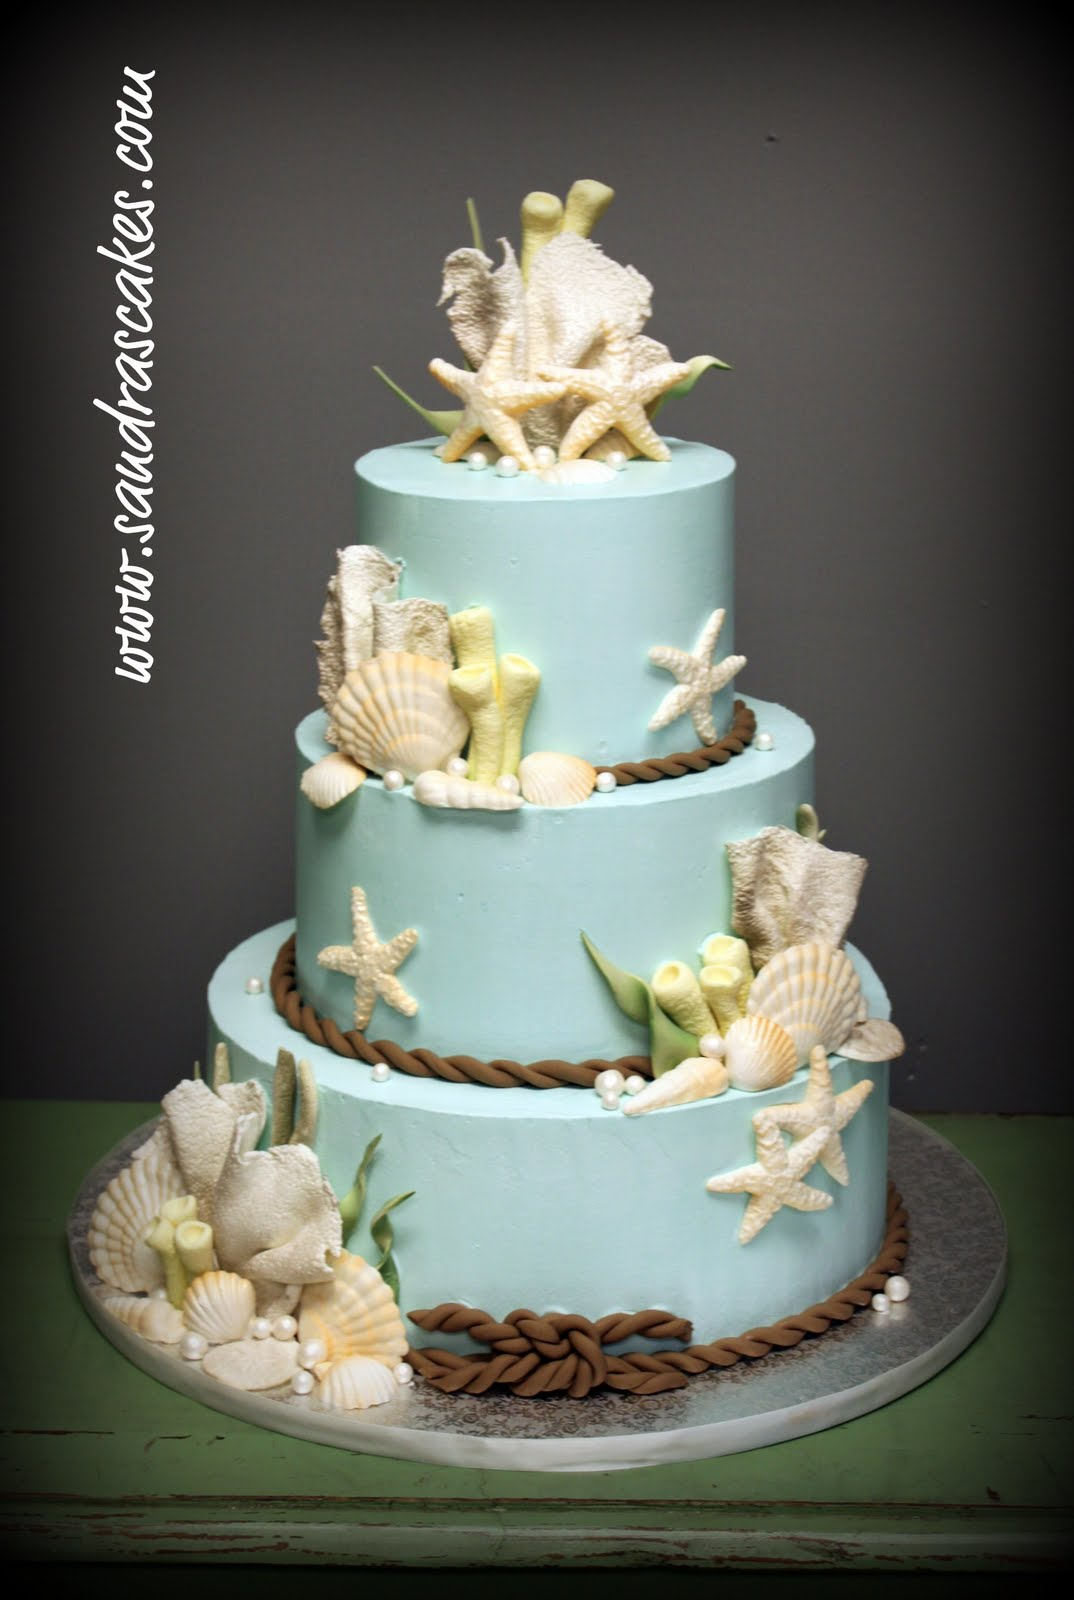 beach themed wedding cakes. Black Bedroom Furniture Sets. Home Design Ideas